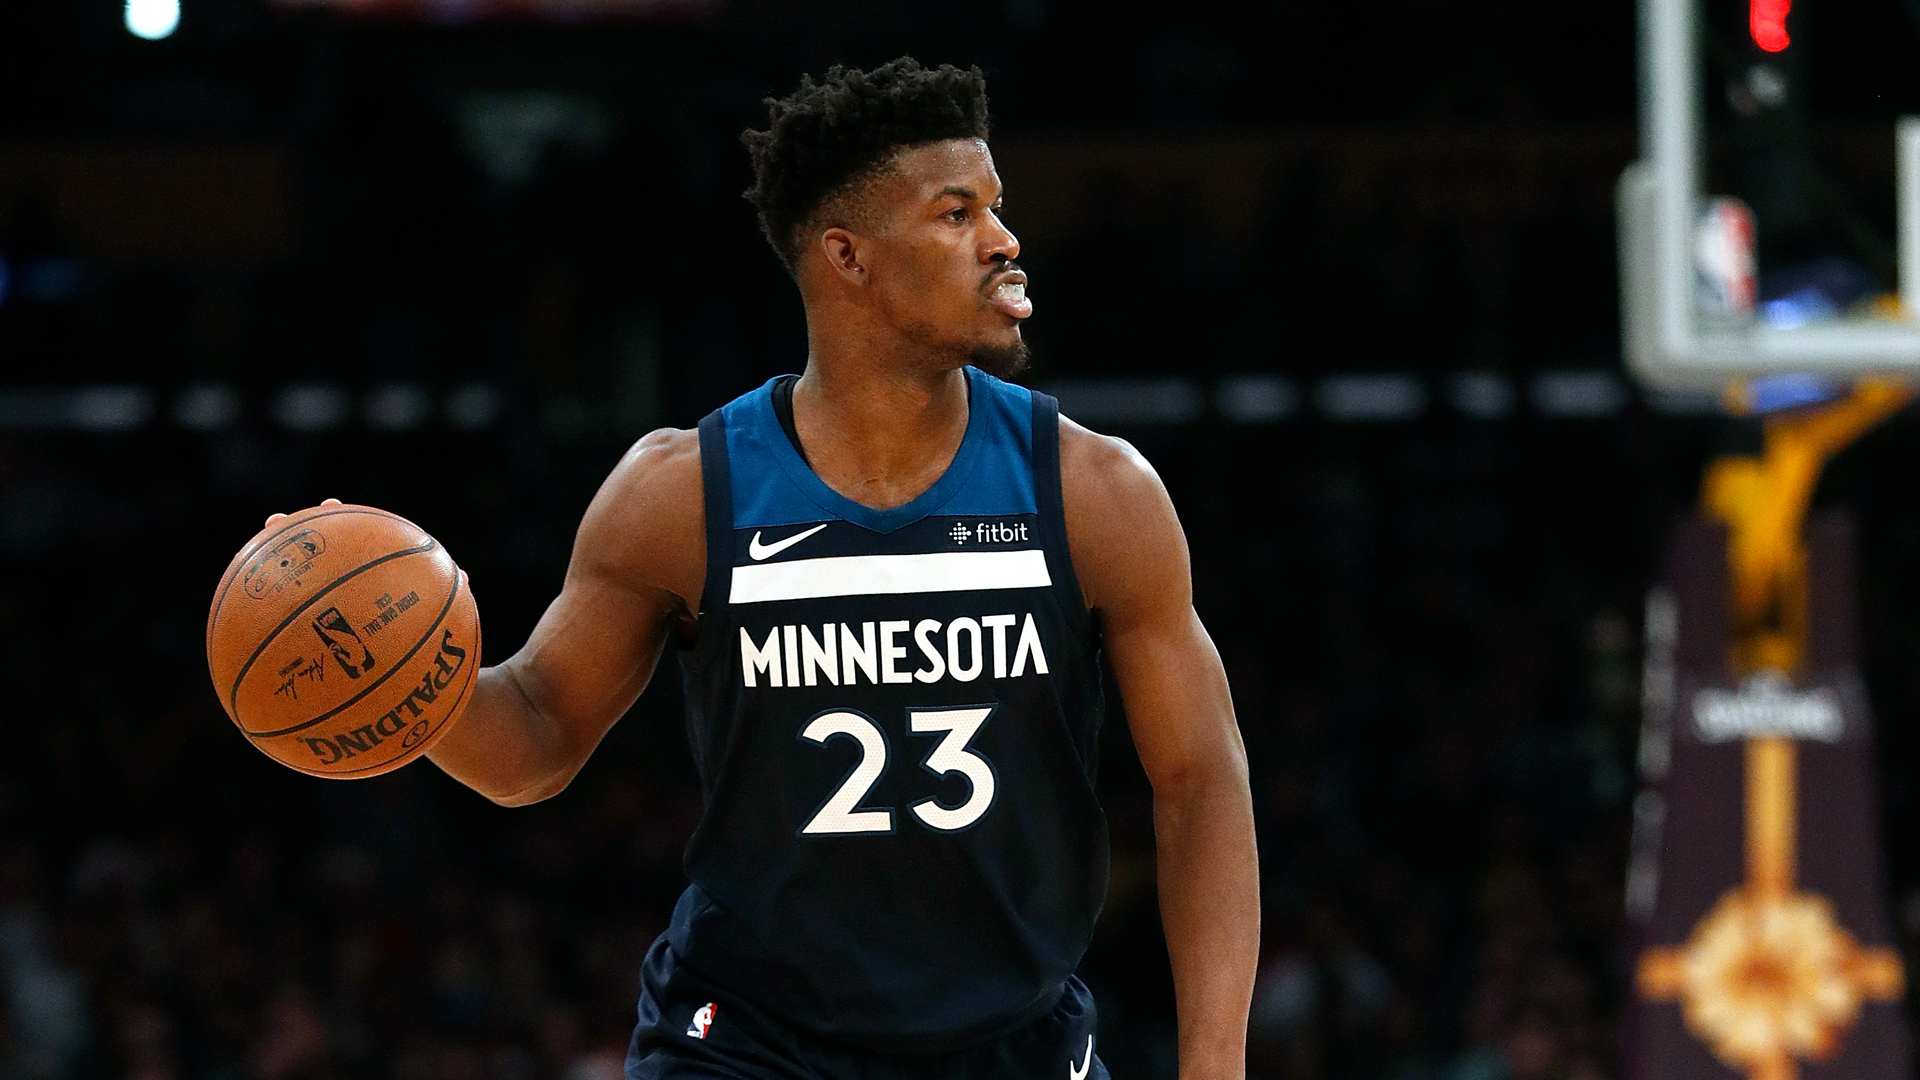 Jimmy Butler suffers right knee injury, MRI scheduled Saturday